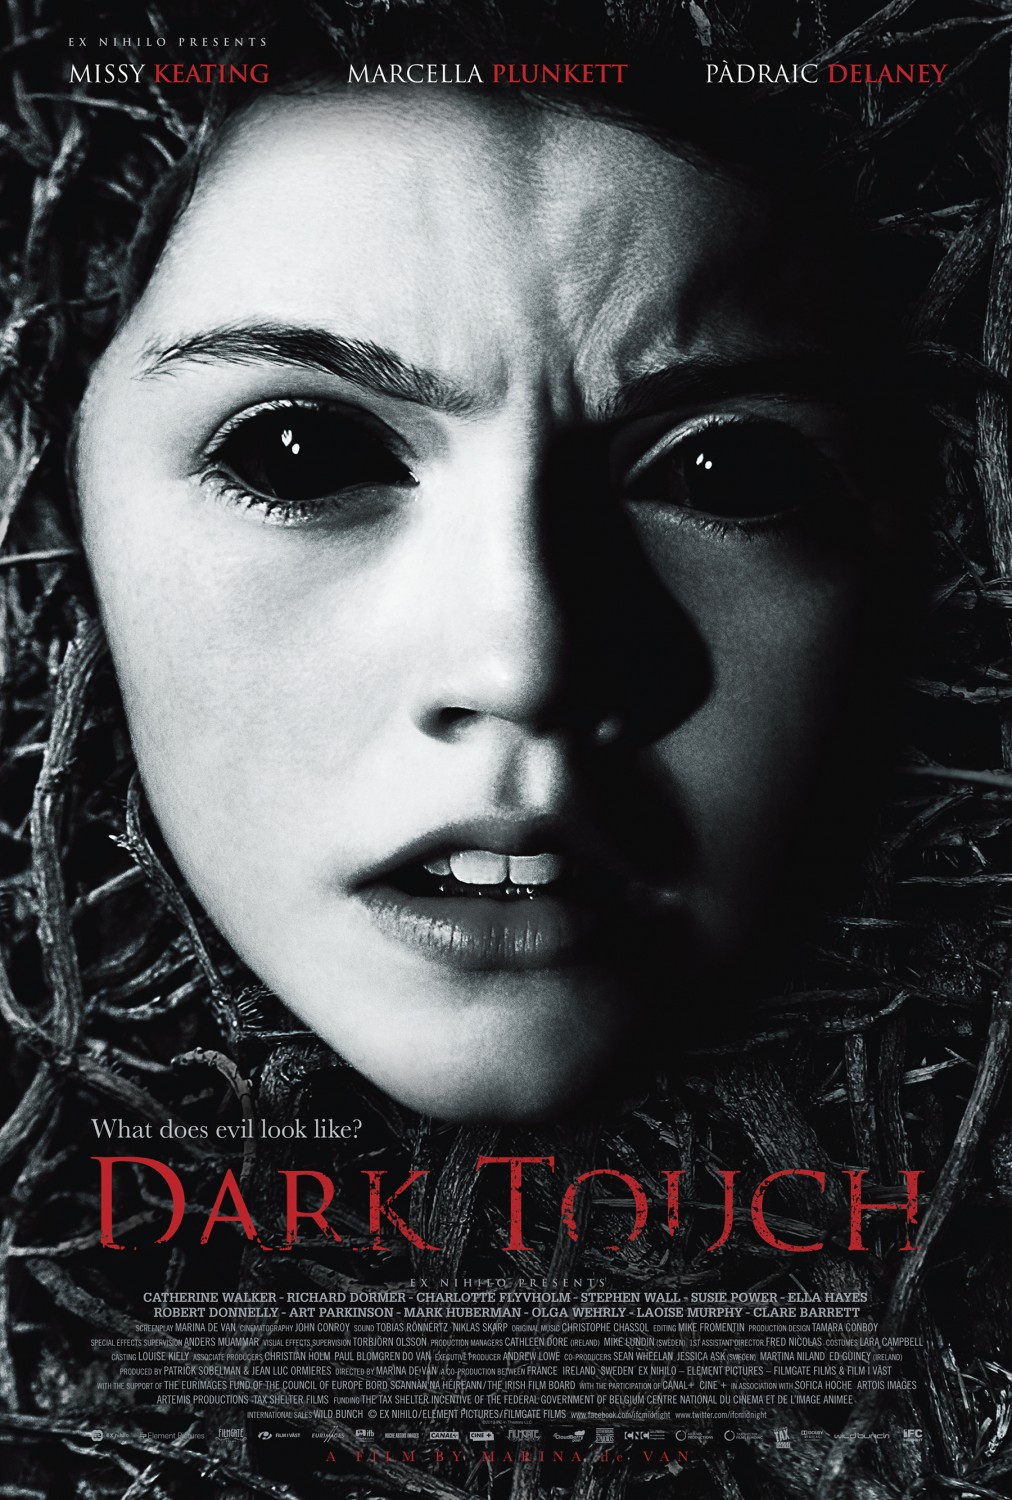 Dark Touch [BRRiP] [VOSTFR] [MULTI]